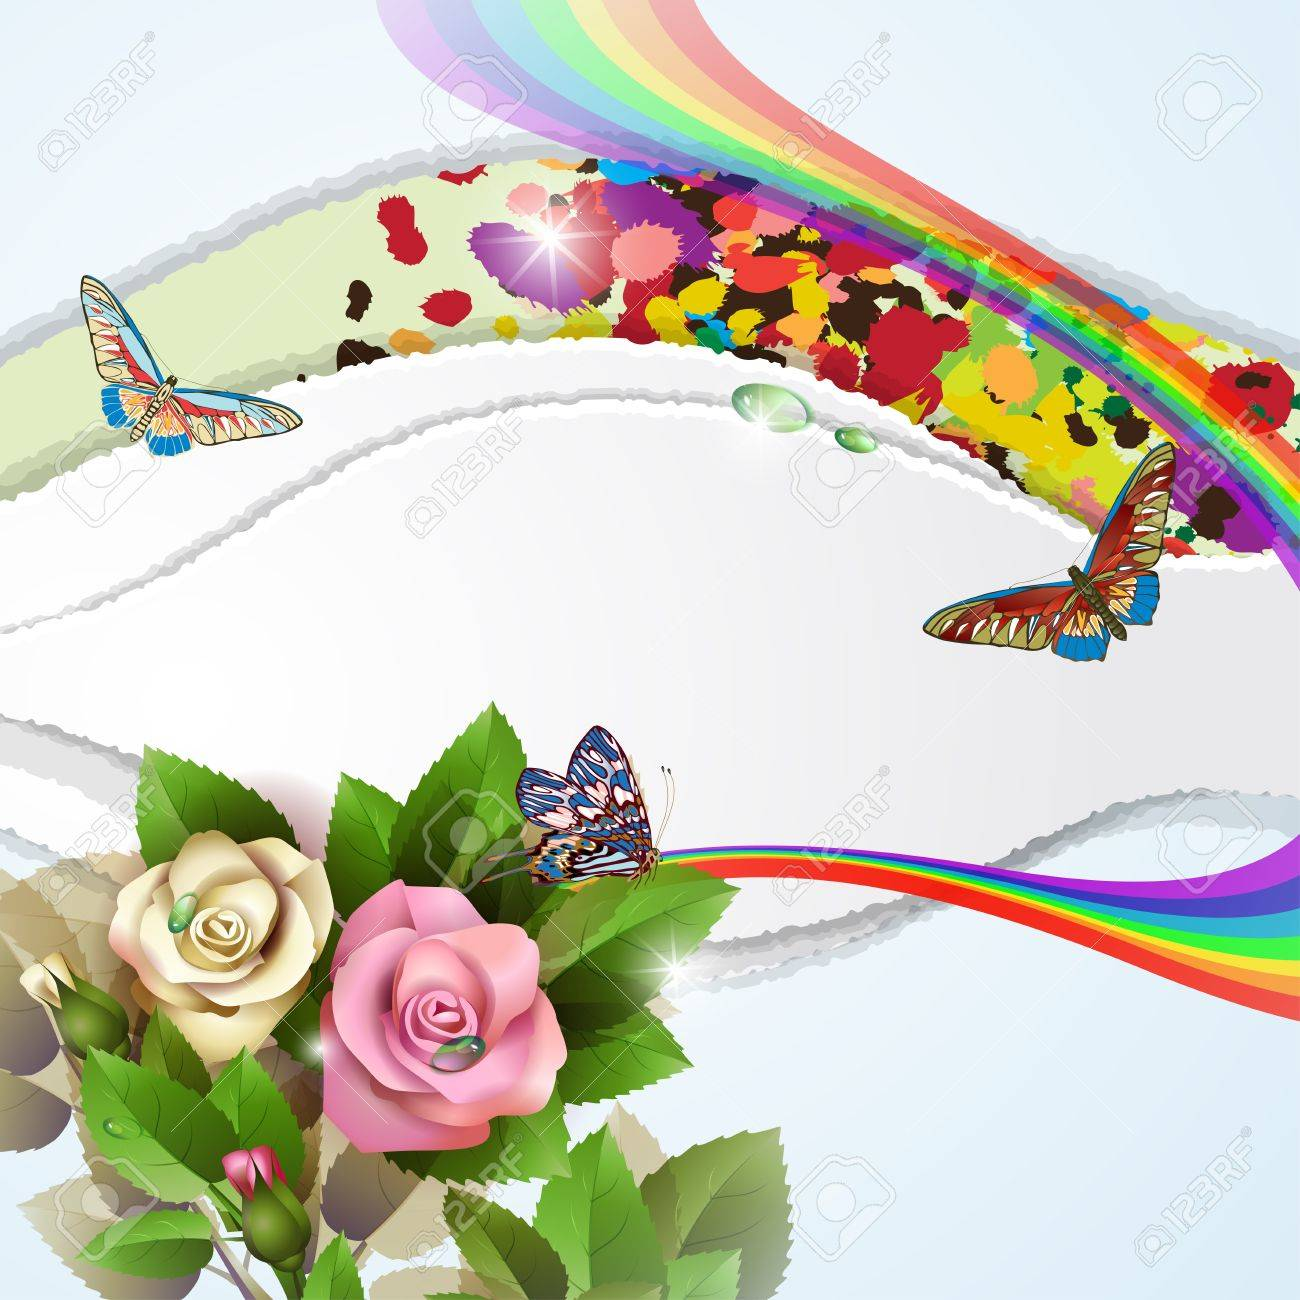 Elegant background with beautiful roses, rainbow, butterflies and drops Stock Vector - 14704852